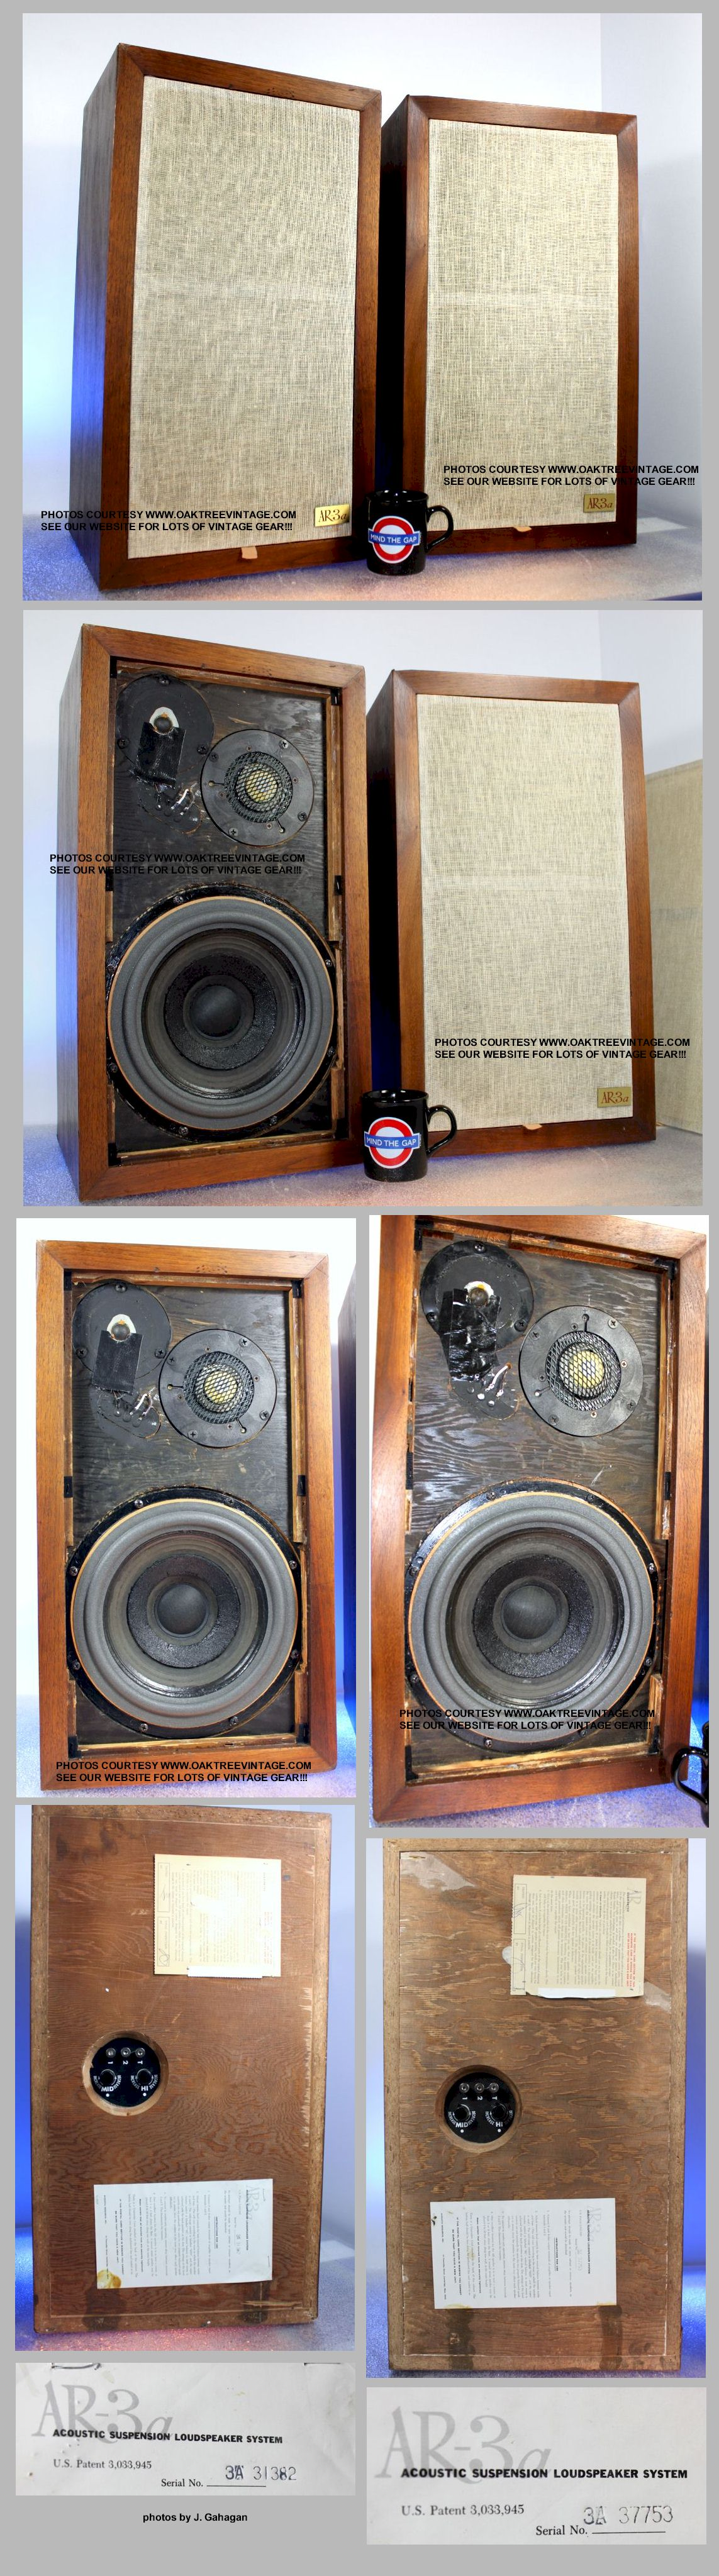 archive vintage stereo speakers photo gallery